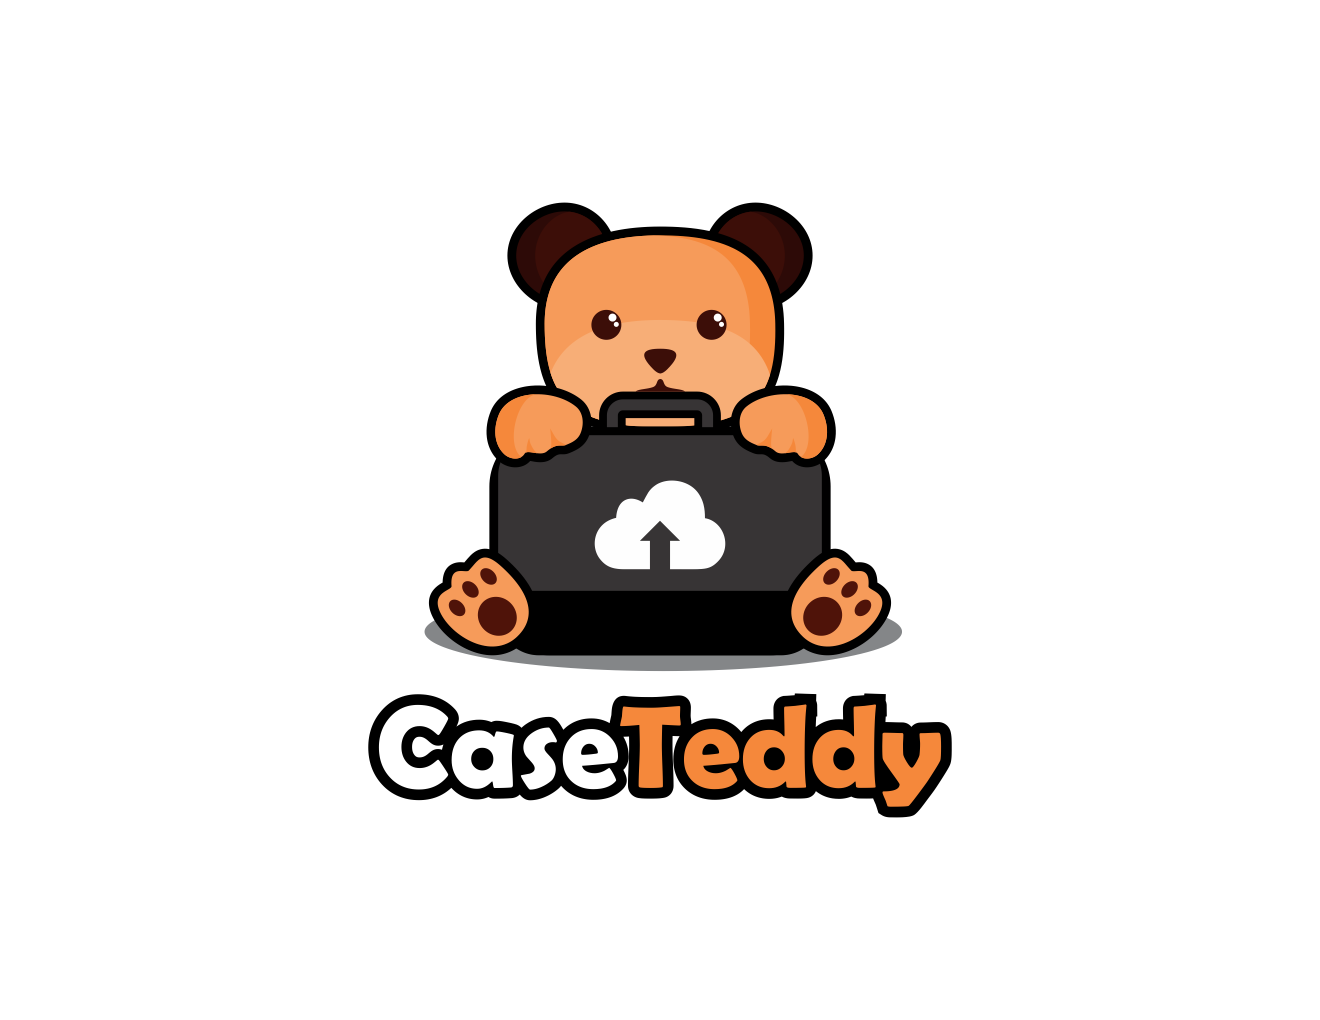 A Sincere, Kind Teddy Bear with his Trusty Case...